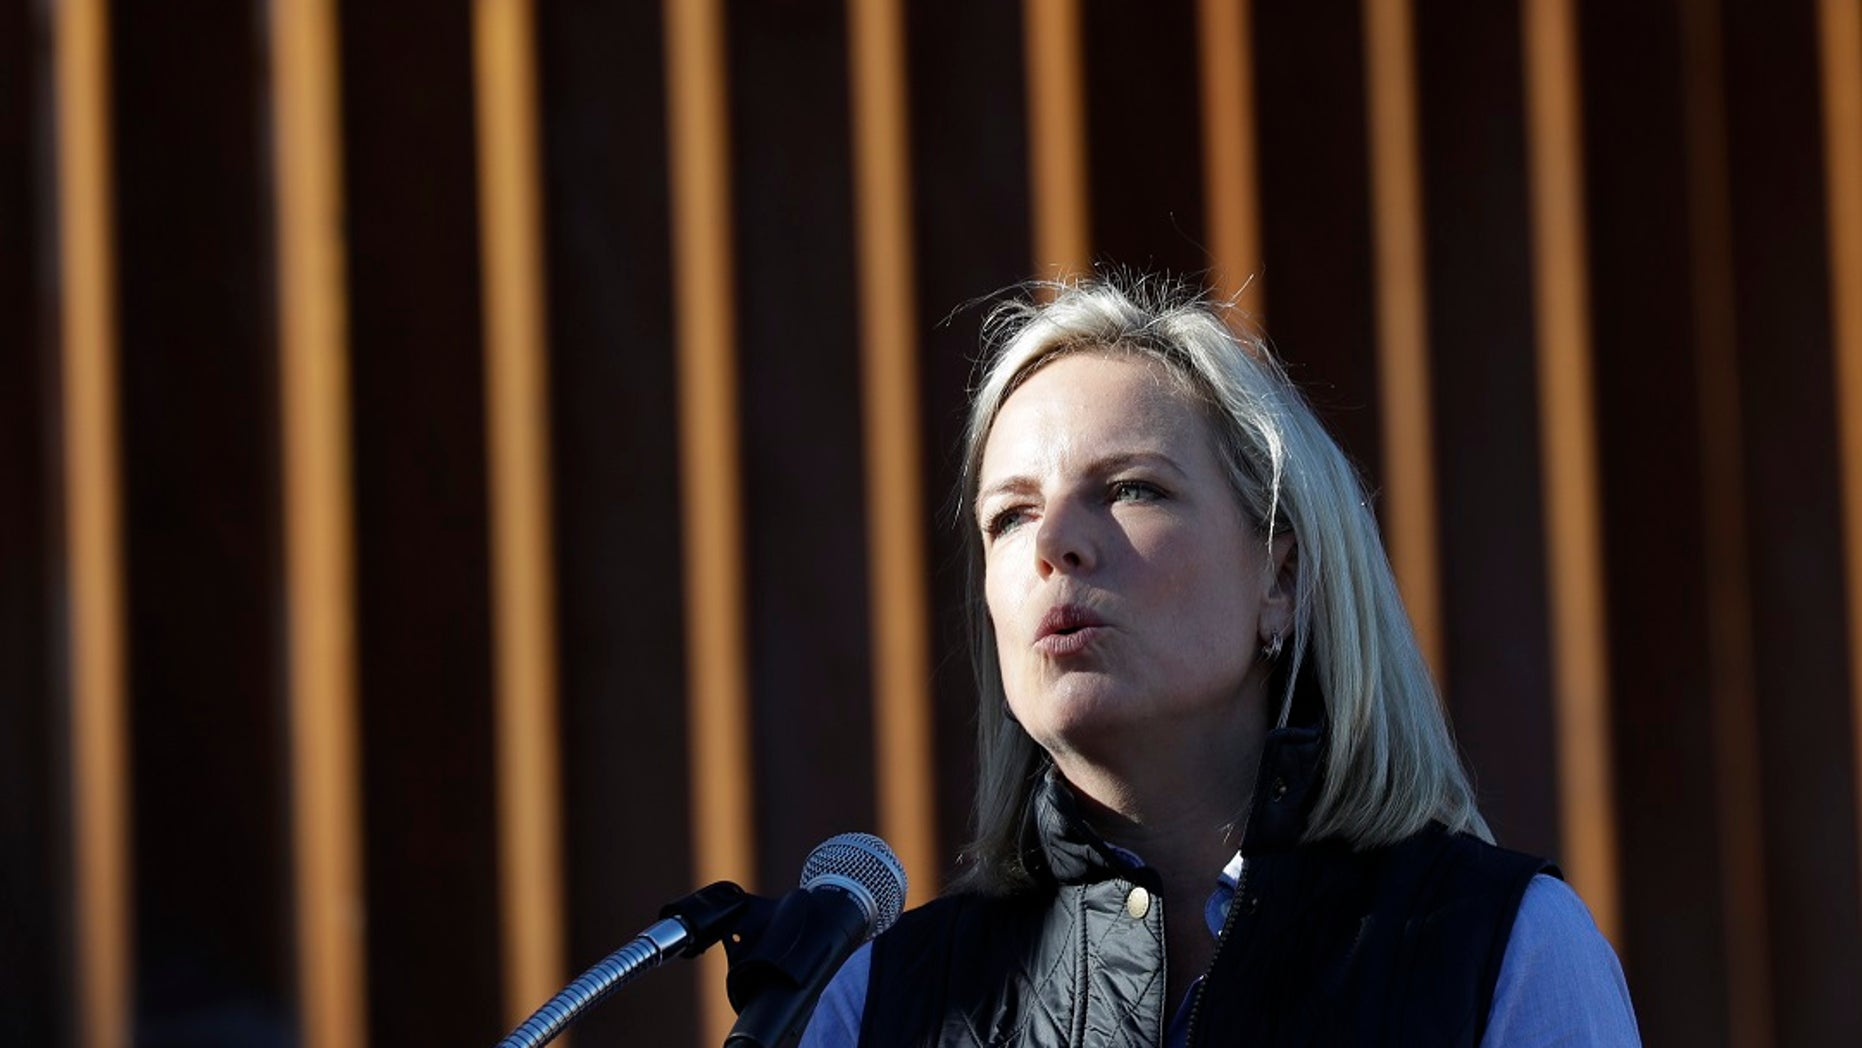 U.S. Department of Homeland Security Secretary Kirstjen Nielsen speaks in front of a newly fortified border wall structure on Friday.